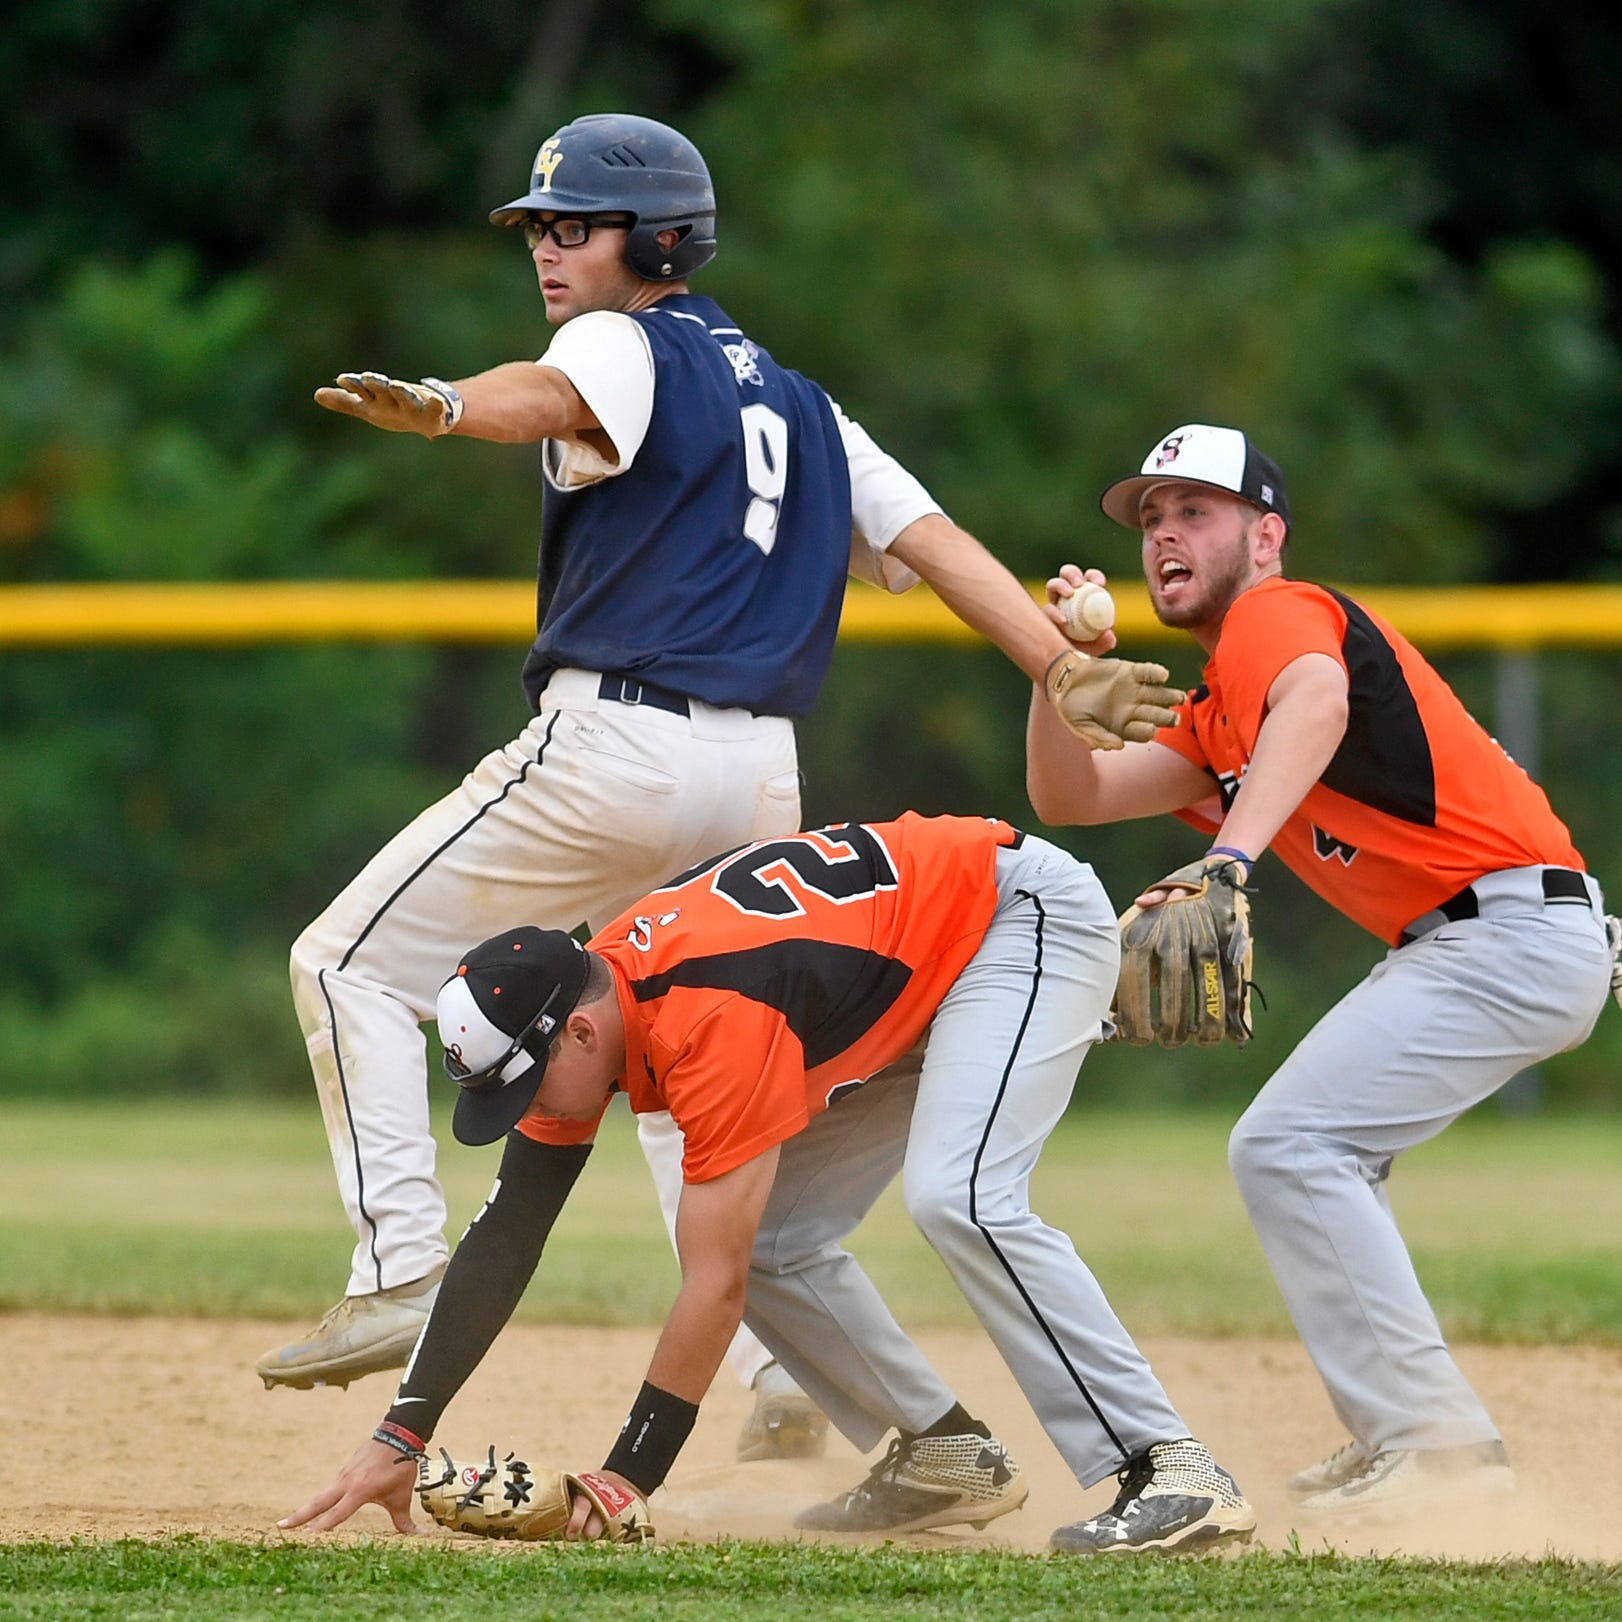 Interleague play becomes reality this season between Central, Susquehanna baseball leagues